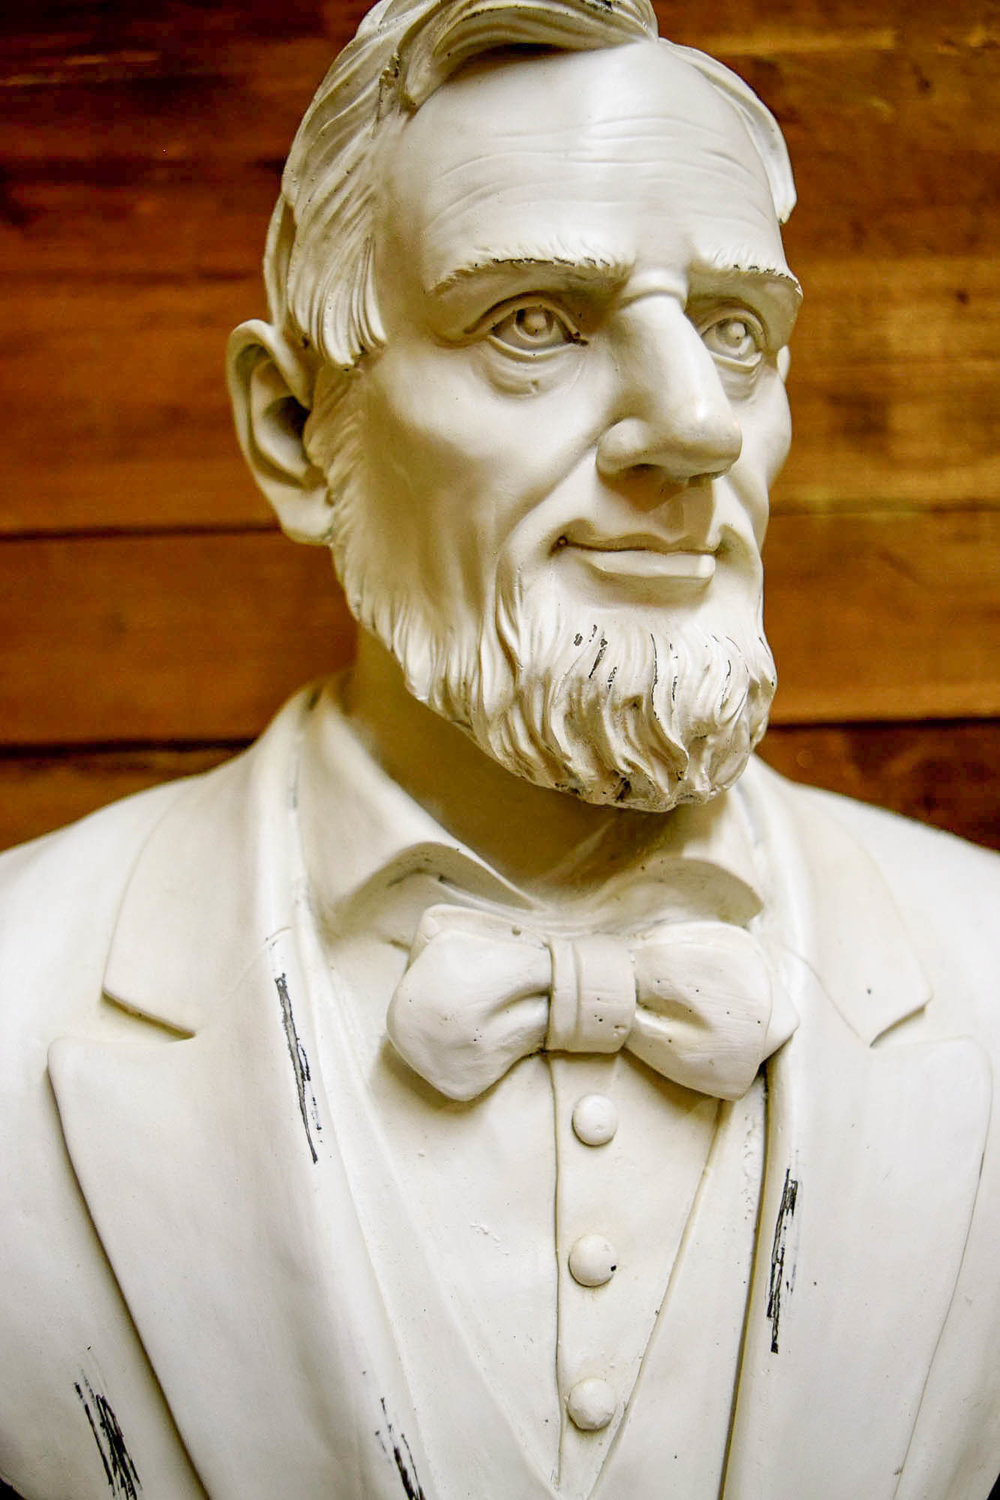 Abraham Lincoln Bust | Refindings York, PA | Architectural Salvage & Antiques